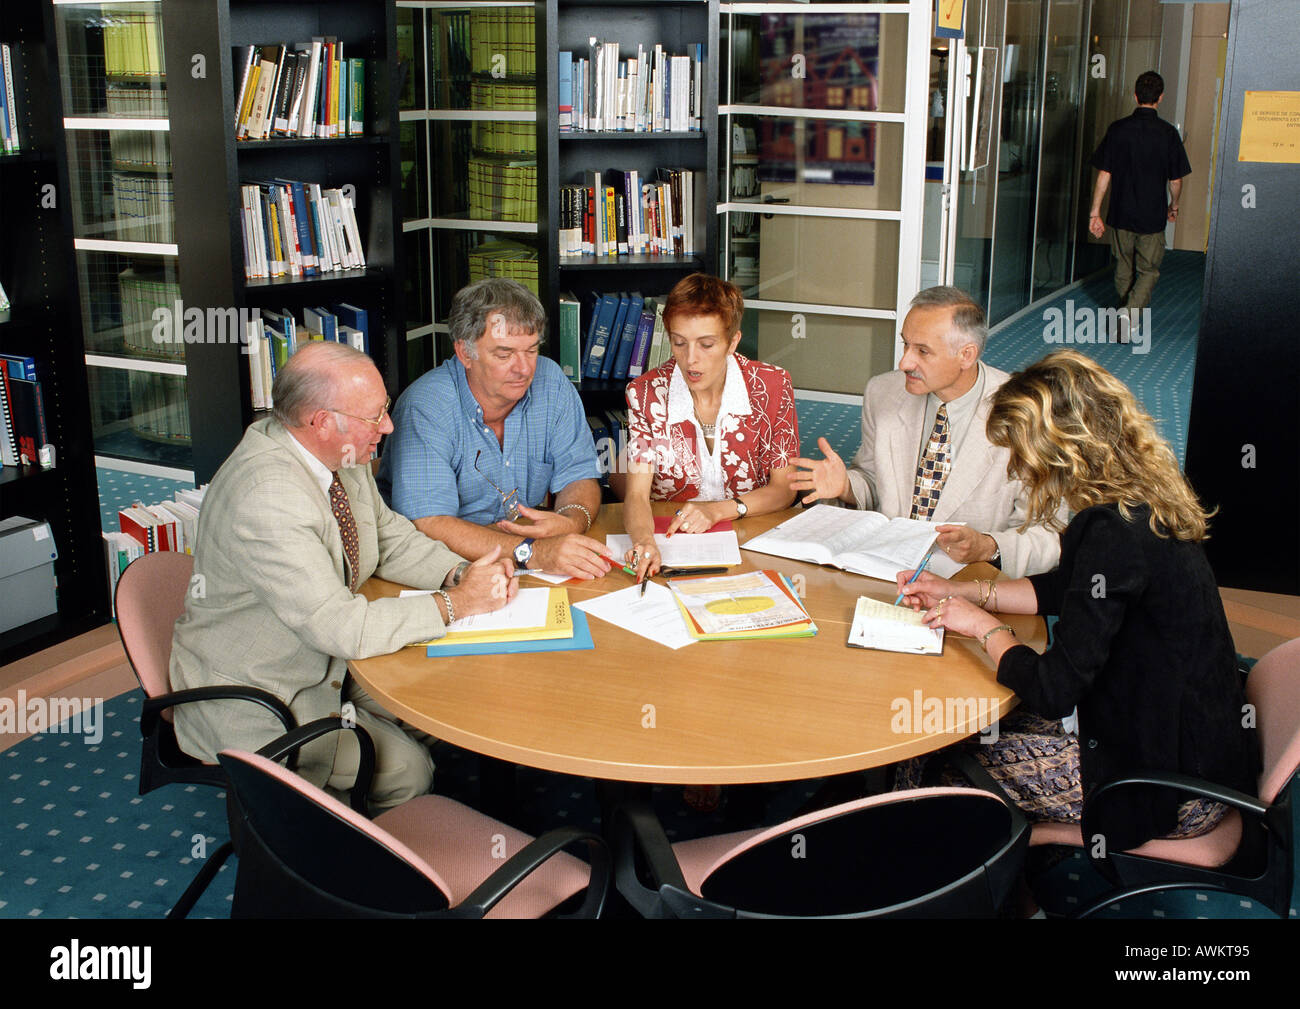 Five people sitting in conference room, high angle view - Stock Image